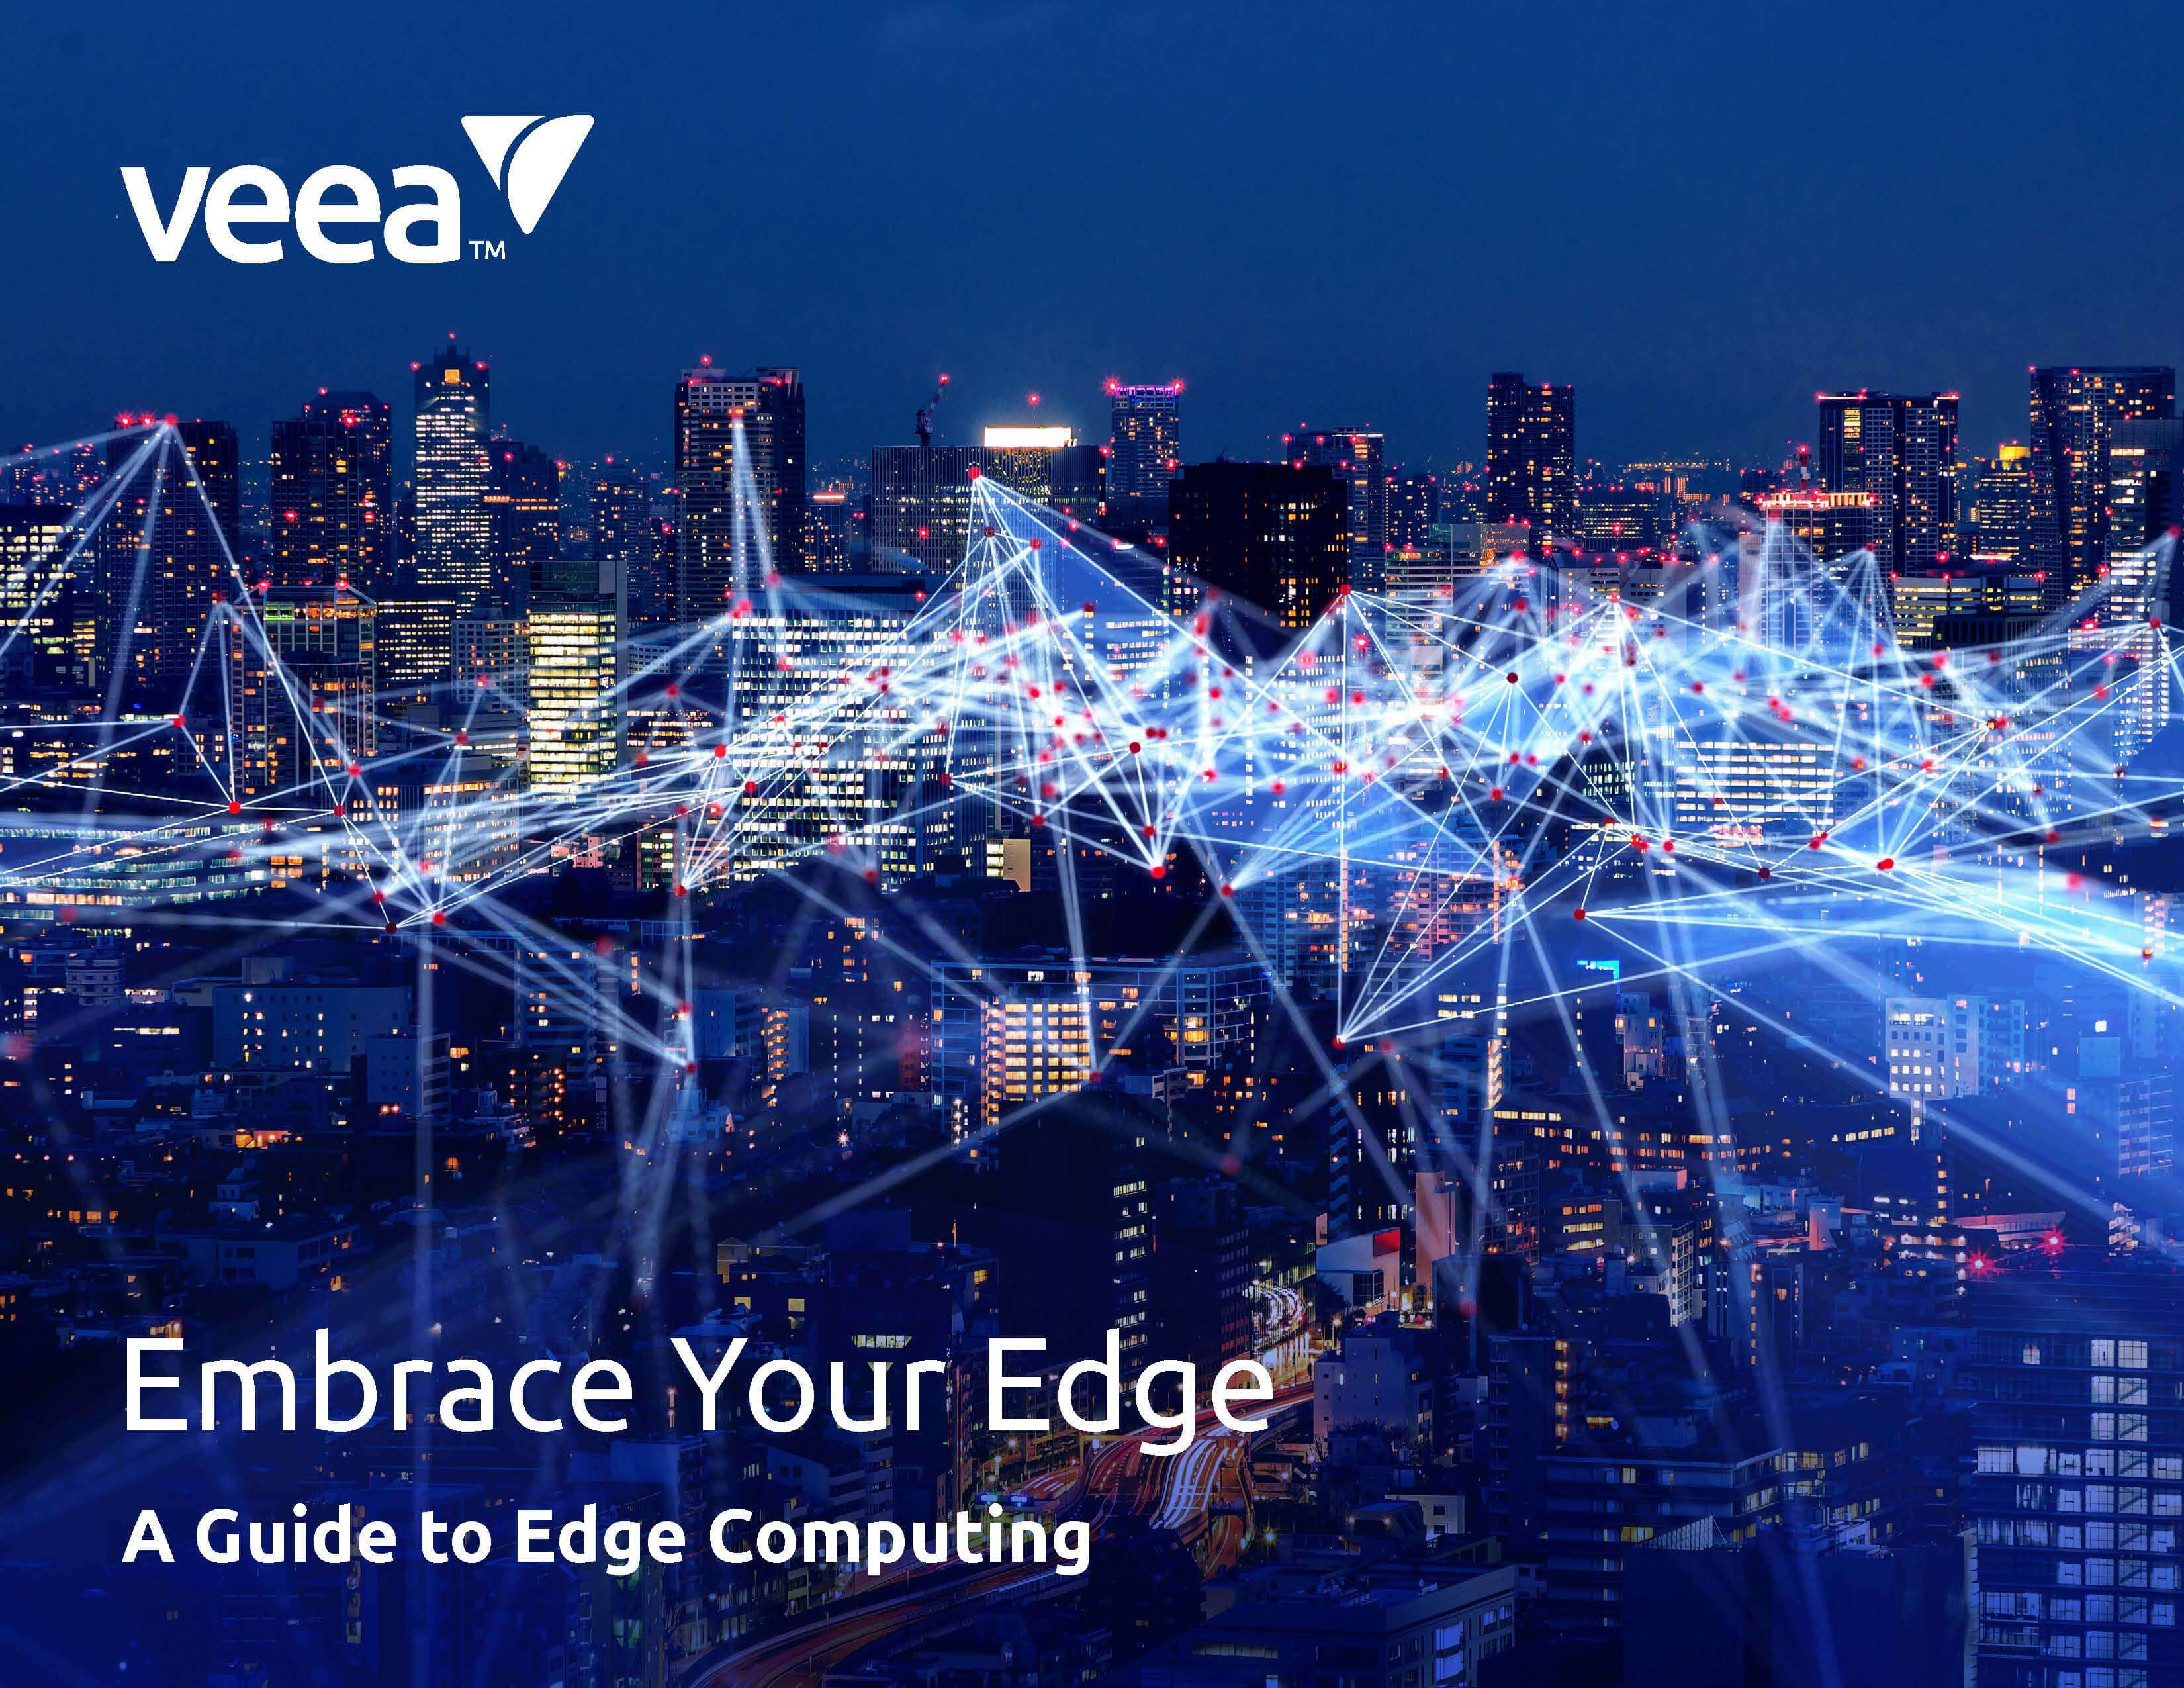 ebook_embrace_your_edge_cover-1